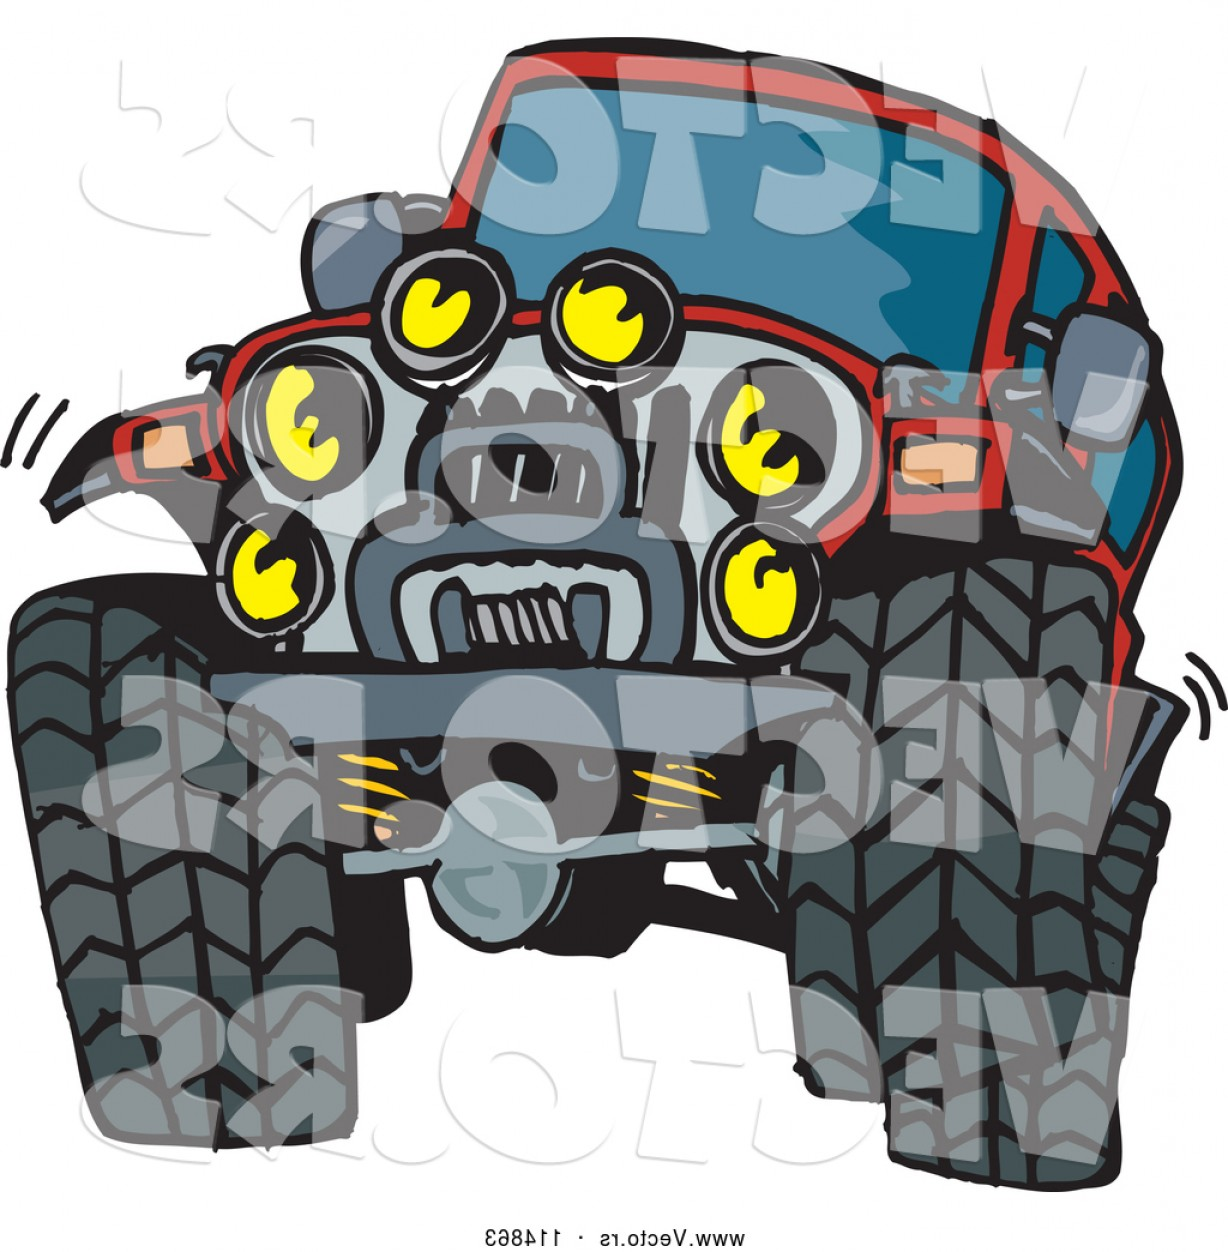 Jeep Tire Vector: Vector Of A Red Jeep Vehicle With Big Tires And Lots Of Lights By Dennis Holmes Designs